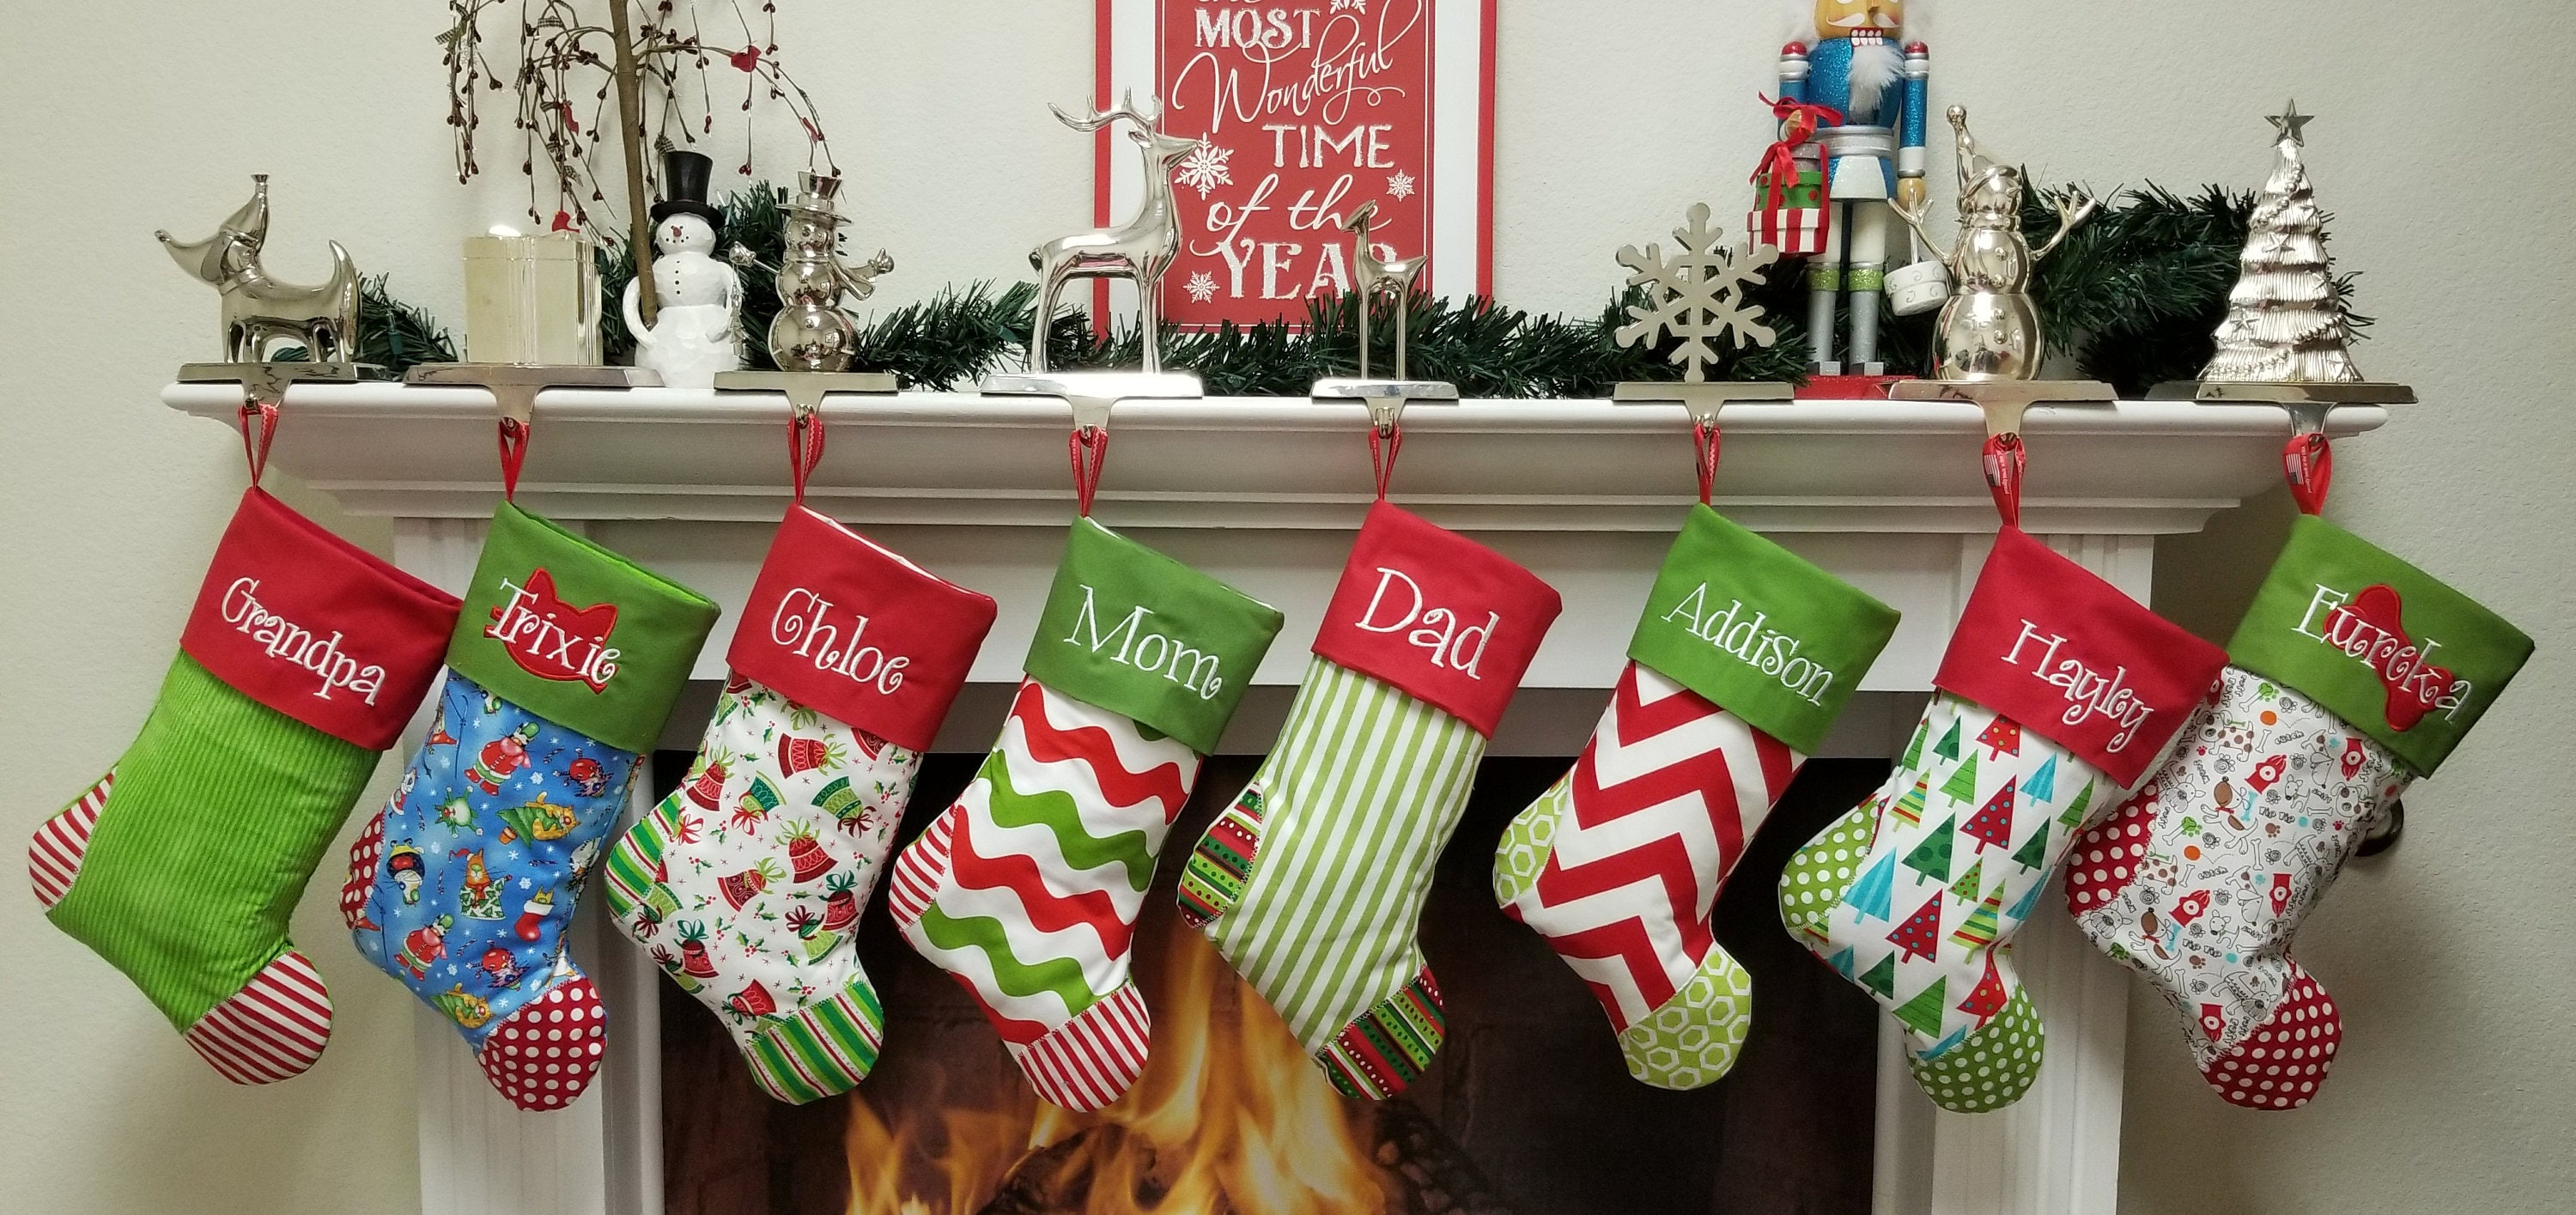 463a851a5 SALE Set of 5 Personalized Family Christmas stockings Ships